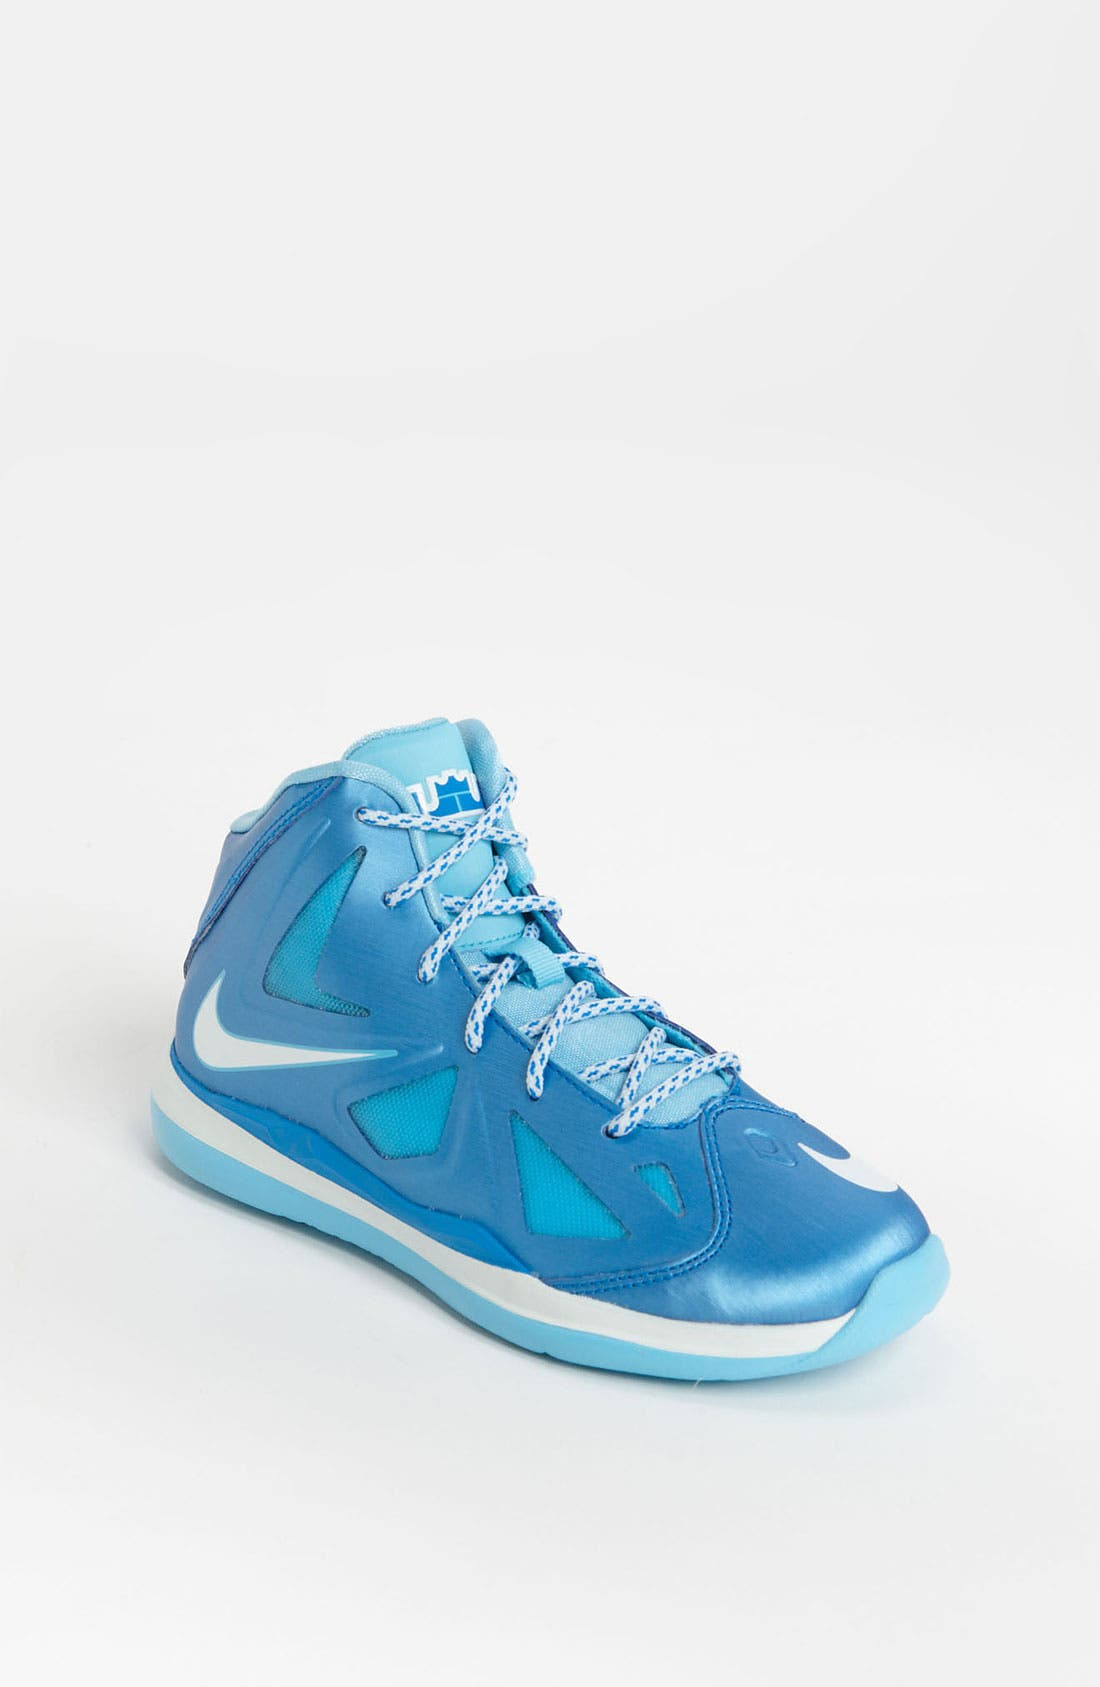 Main Image - Nike 'LeBron 10 Pressure' Basketball Shoe (Toddler & Little Kid)